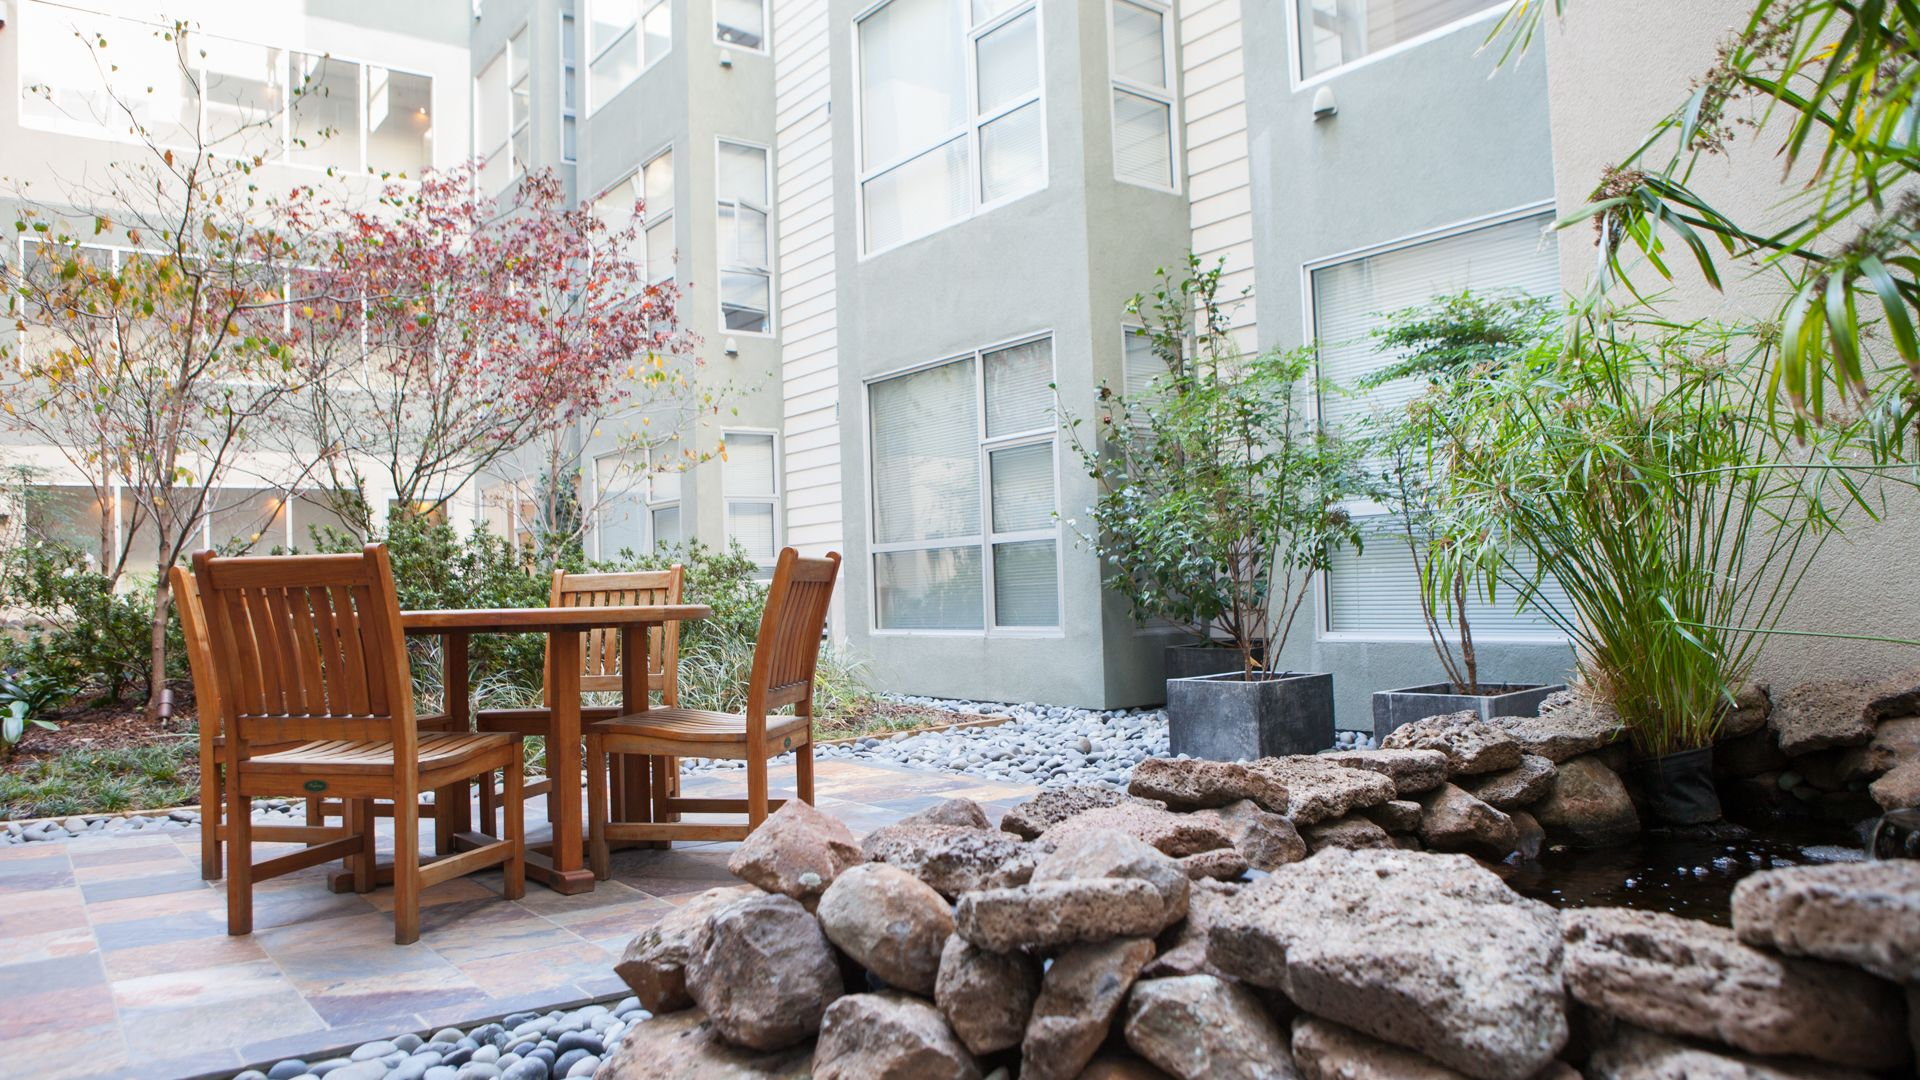 77 Bluxome Apartments - Courtyard